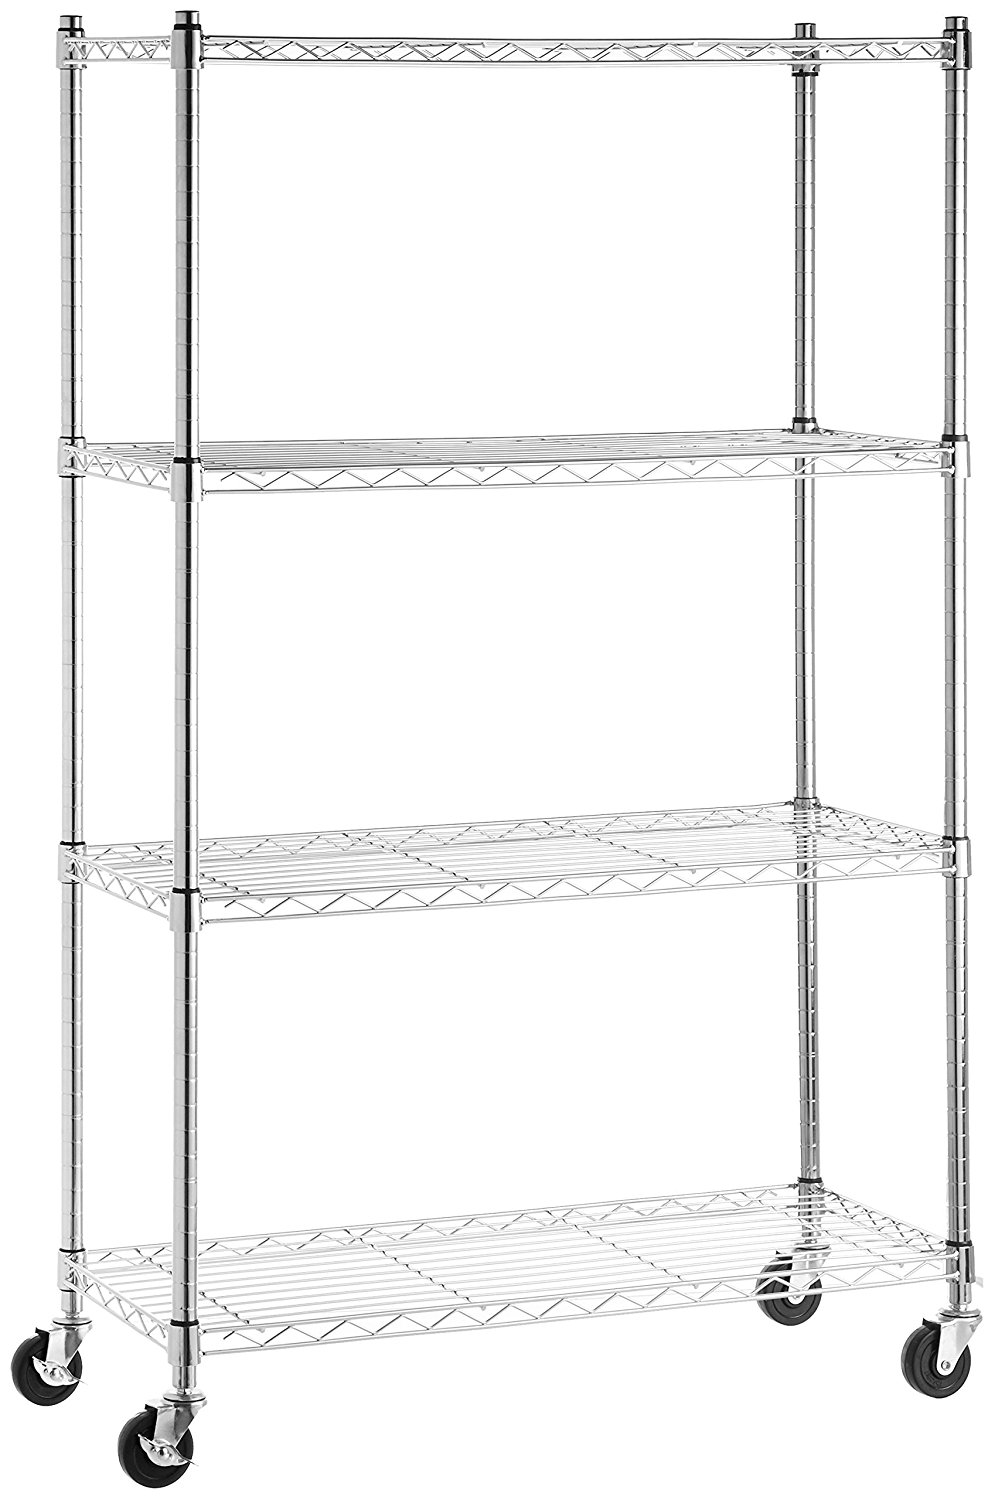 AmazonBasics 4-Shelf Shelving Unit on 3'' Casters